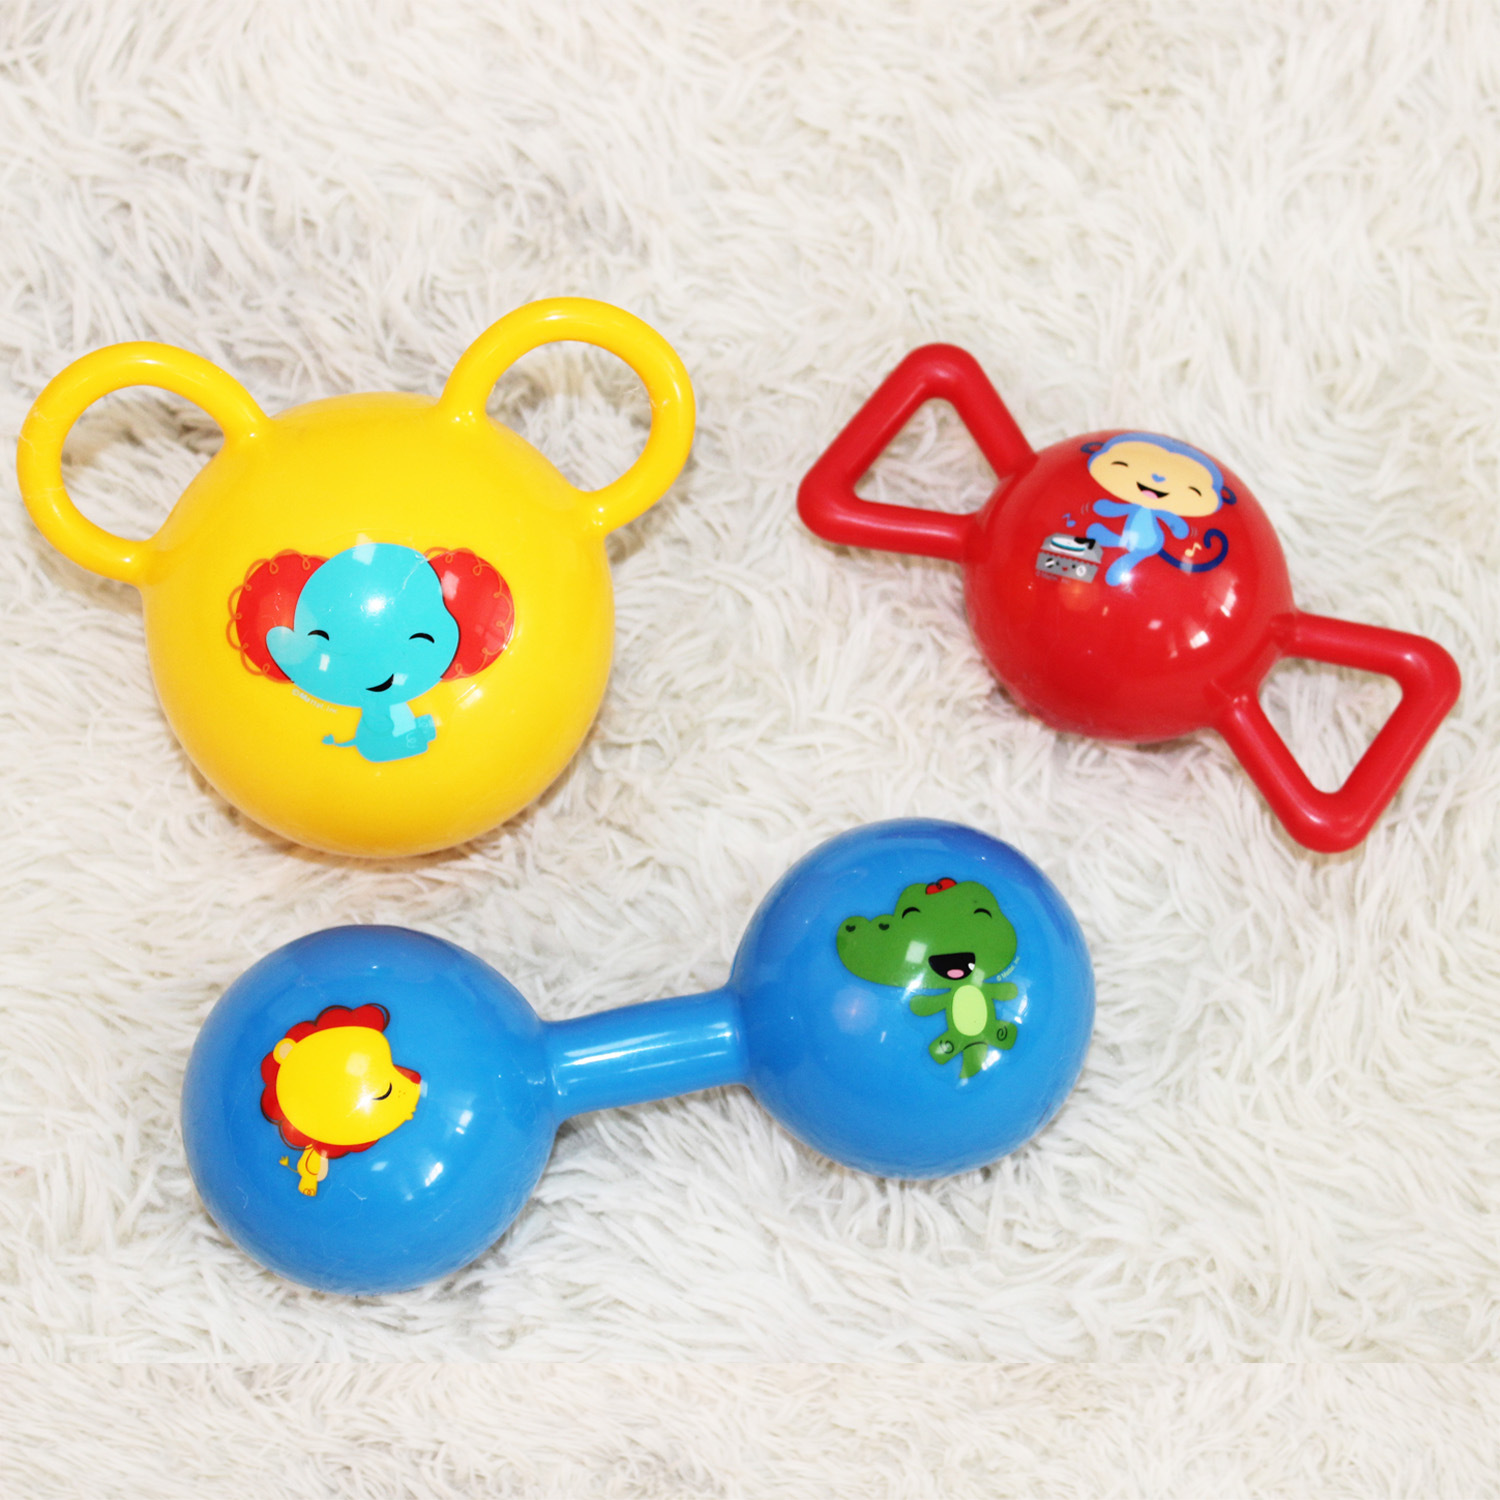 FISHER-PRICE Baby Rattles Set Newborns Hand Ball Kids Squeeze Ball Infant Toy Ball F0912